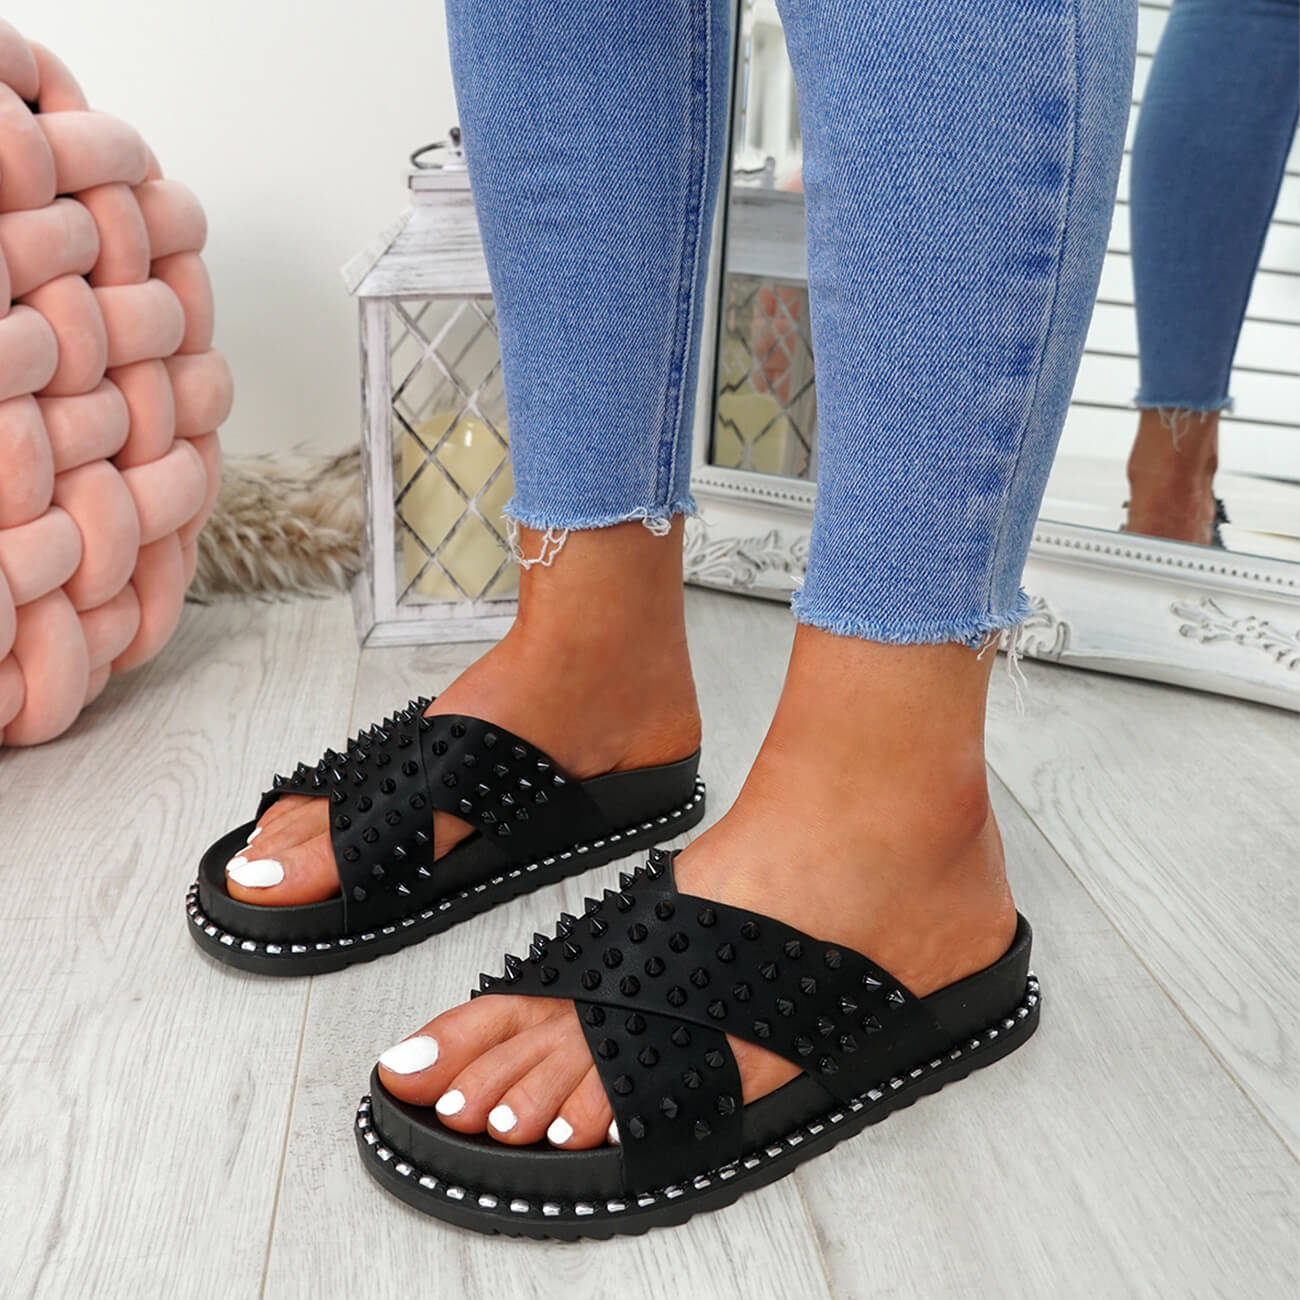 WOMENS-LADIES-SPIKE-STUDS-PEEP-TOE-FLAT-SANDALS-FLIP-FLOPS-SLIP-ON-SHOES-SIZE thumbnail 9